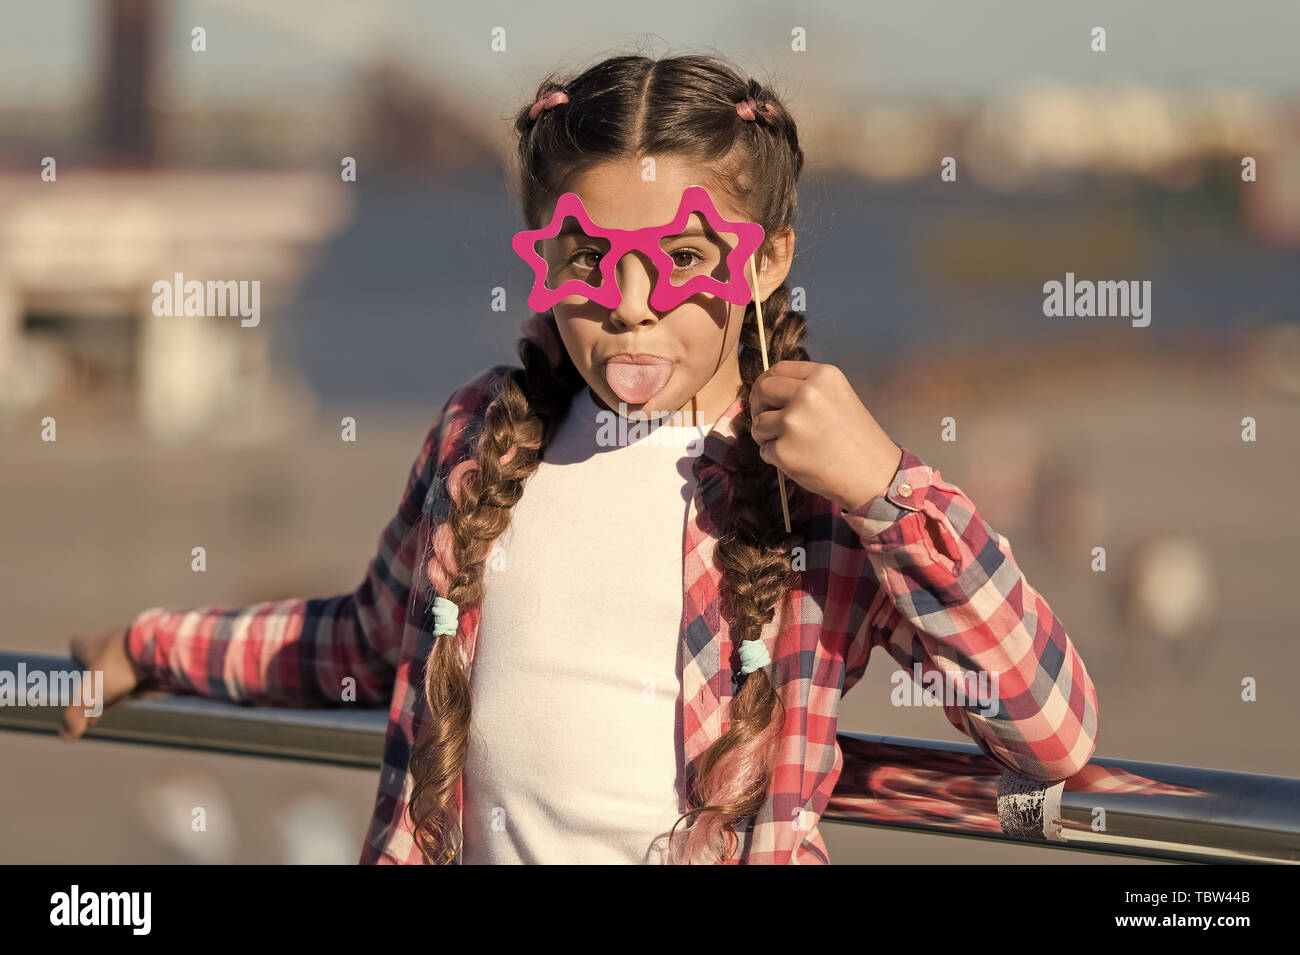 Getting ready for party. Small naughty girl having fun. Fashionable glasses for celebration. Stylish look. Disobedient small girl showing her tounge. Positive moments. Concept of childish carelessness. Stock Photo